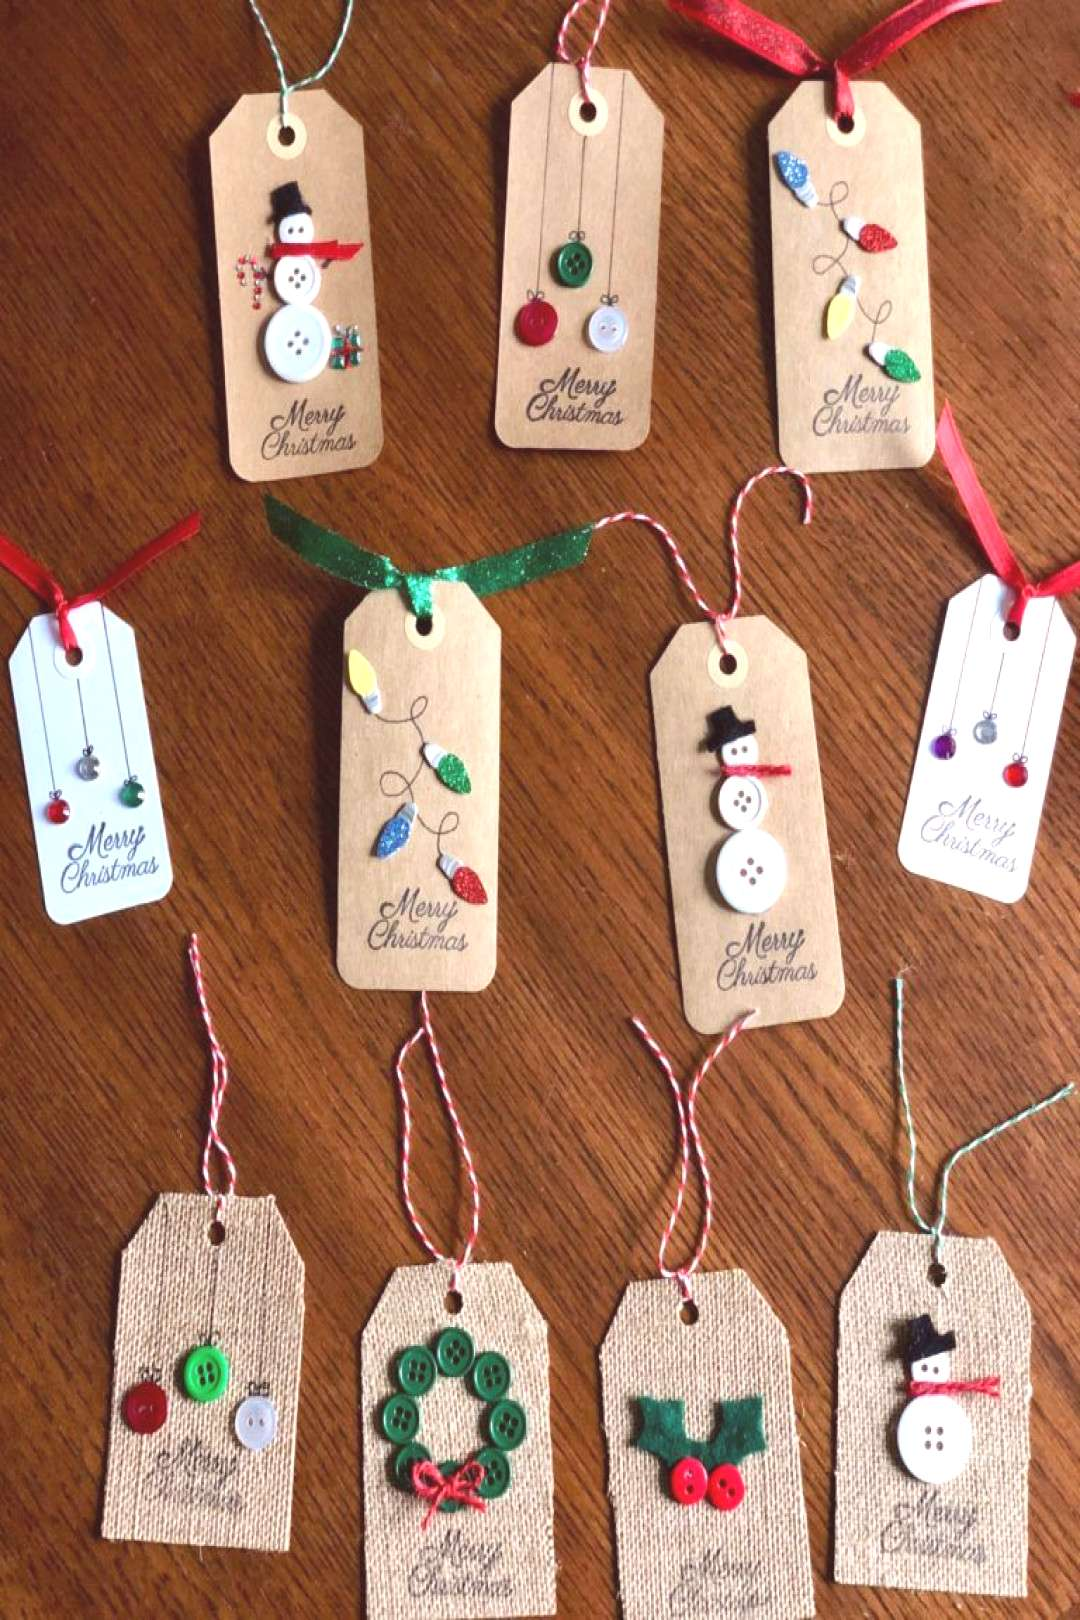 DIY Christmas Gift Tags DIY Christmas Gift Tags are fun and easy to make and the possibilities are